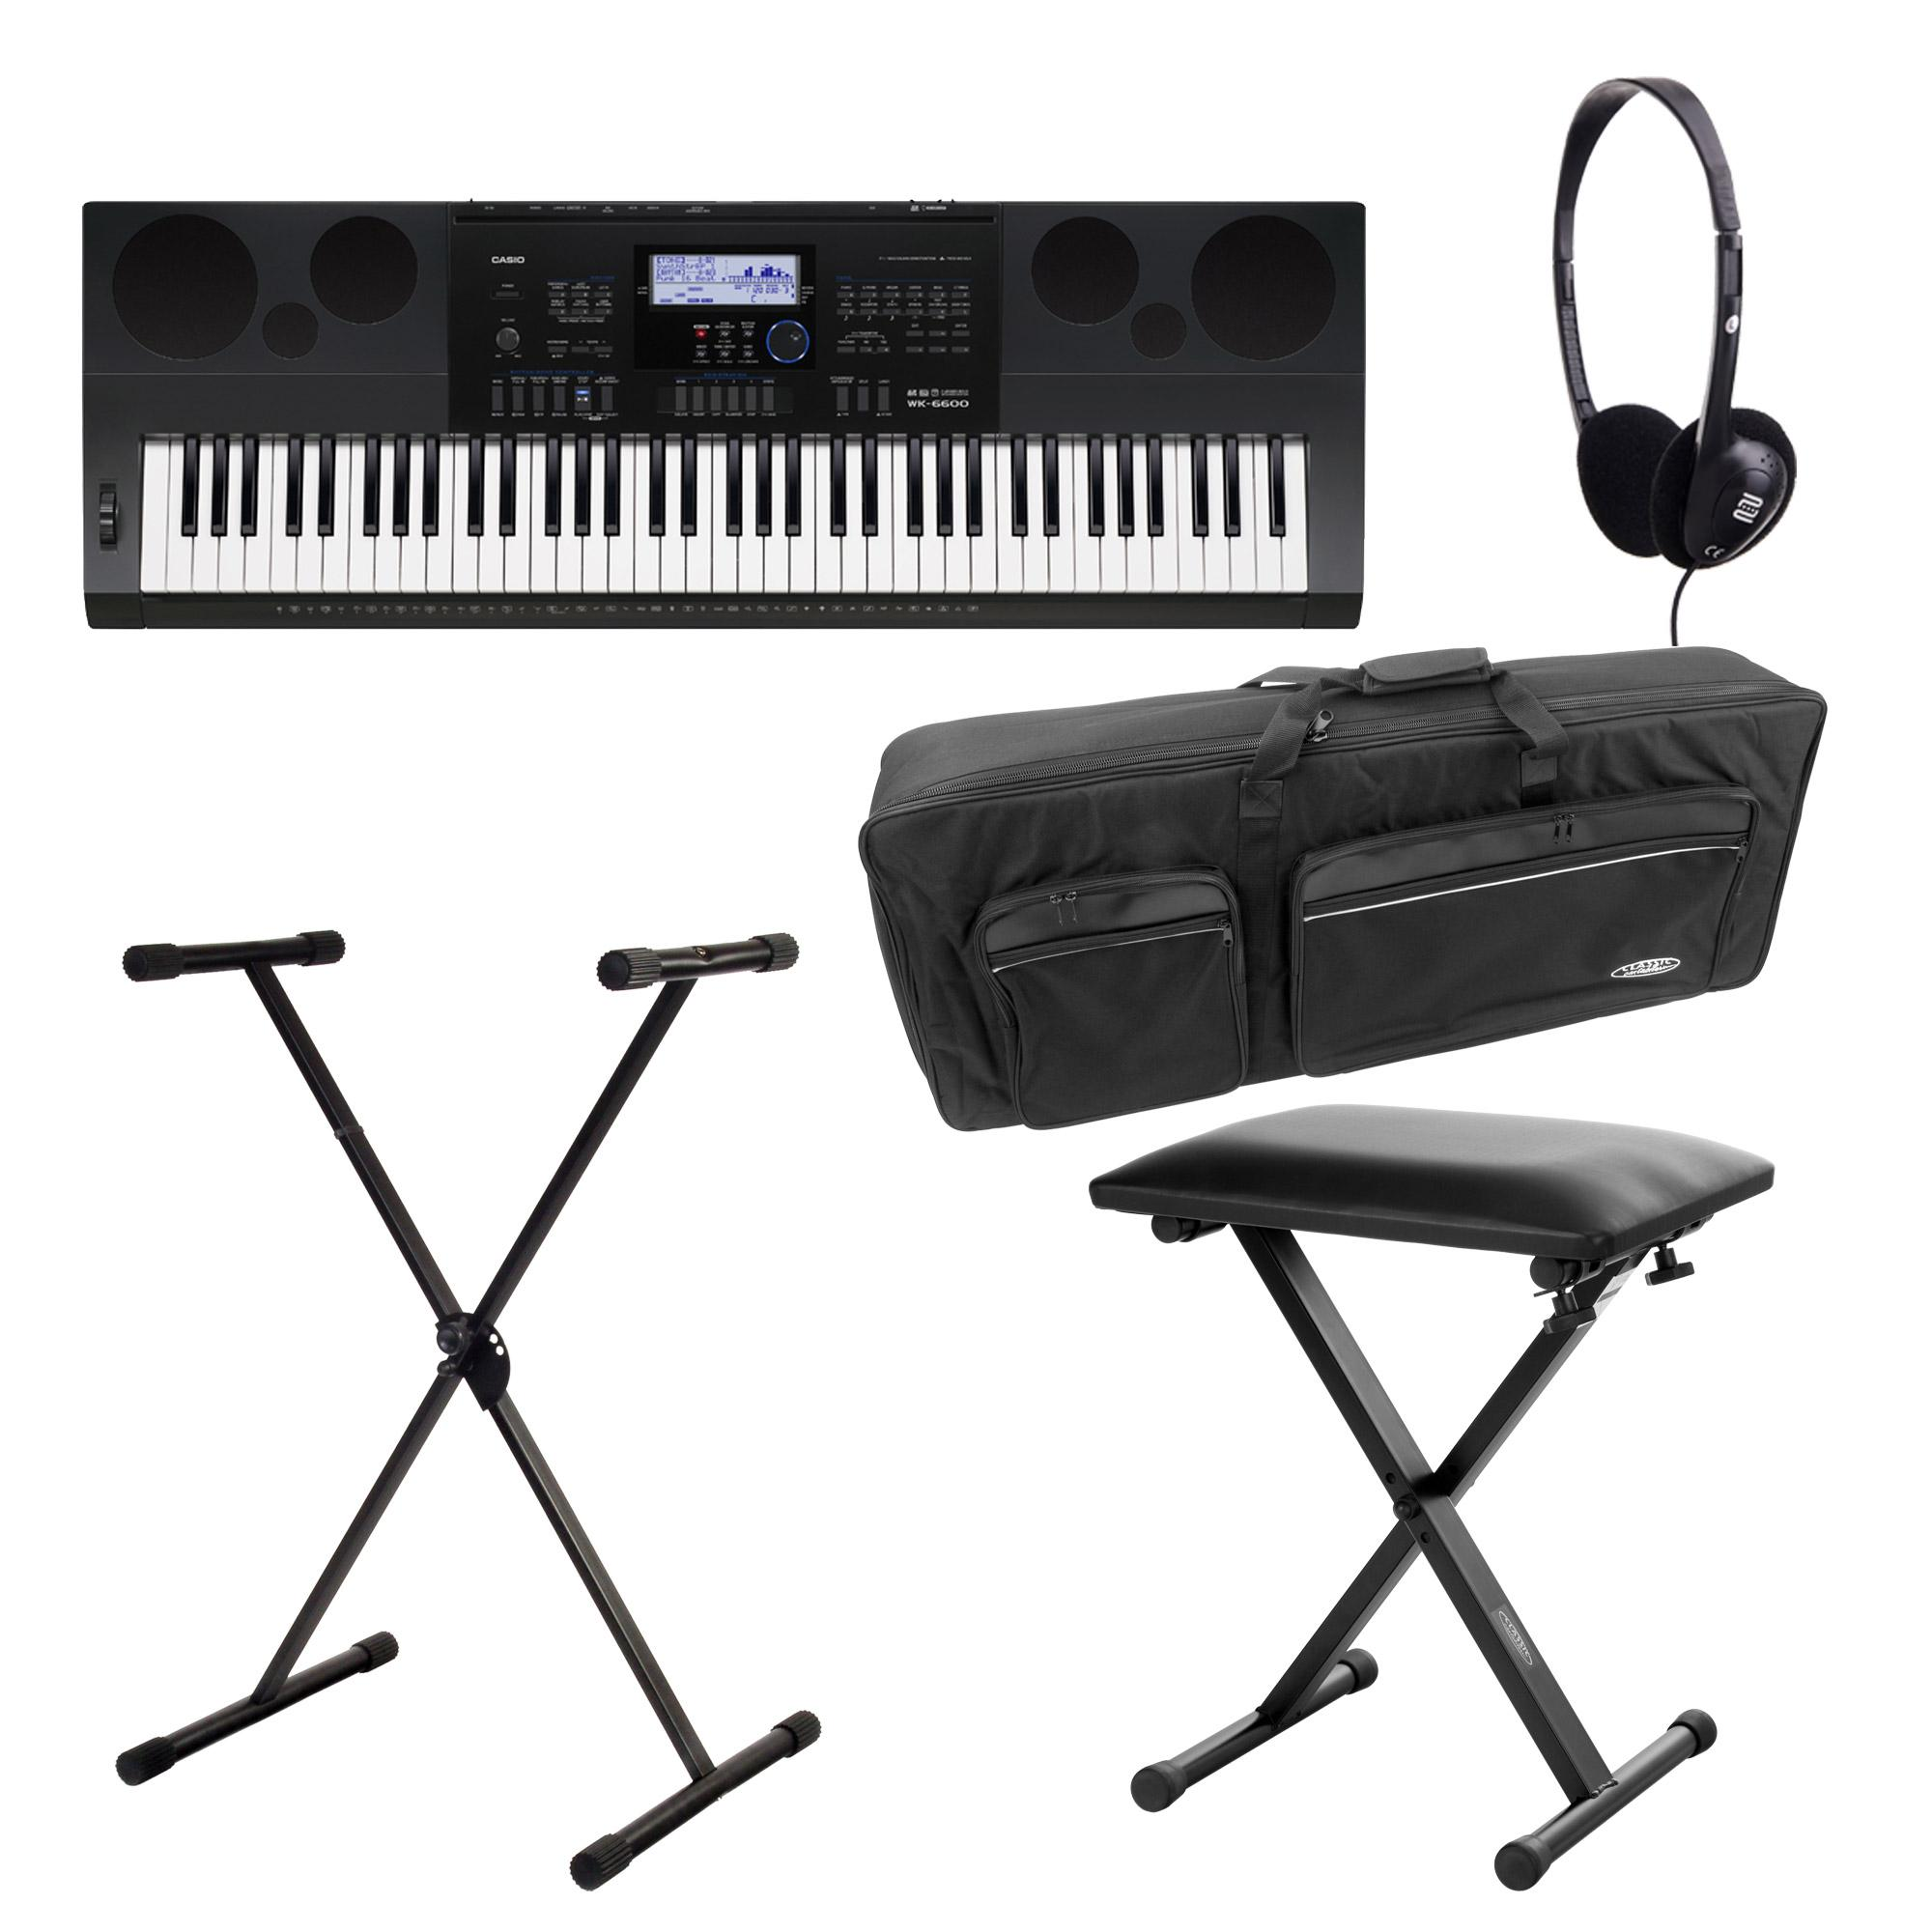 SET Casio WK 6600 Keyboard Deluxe